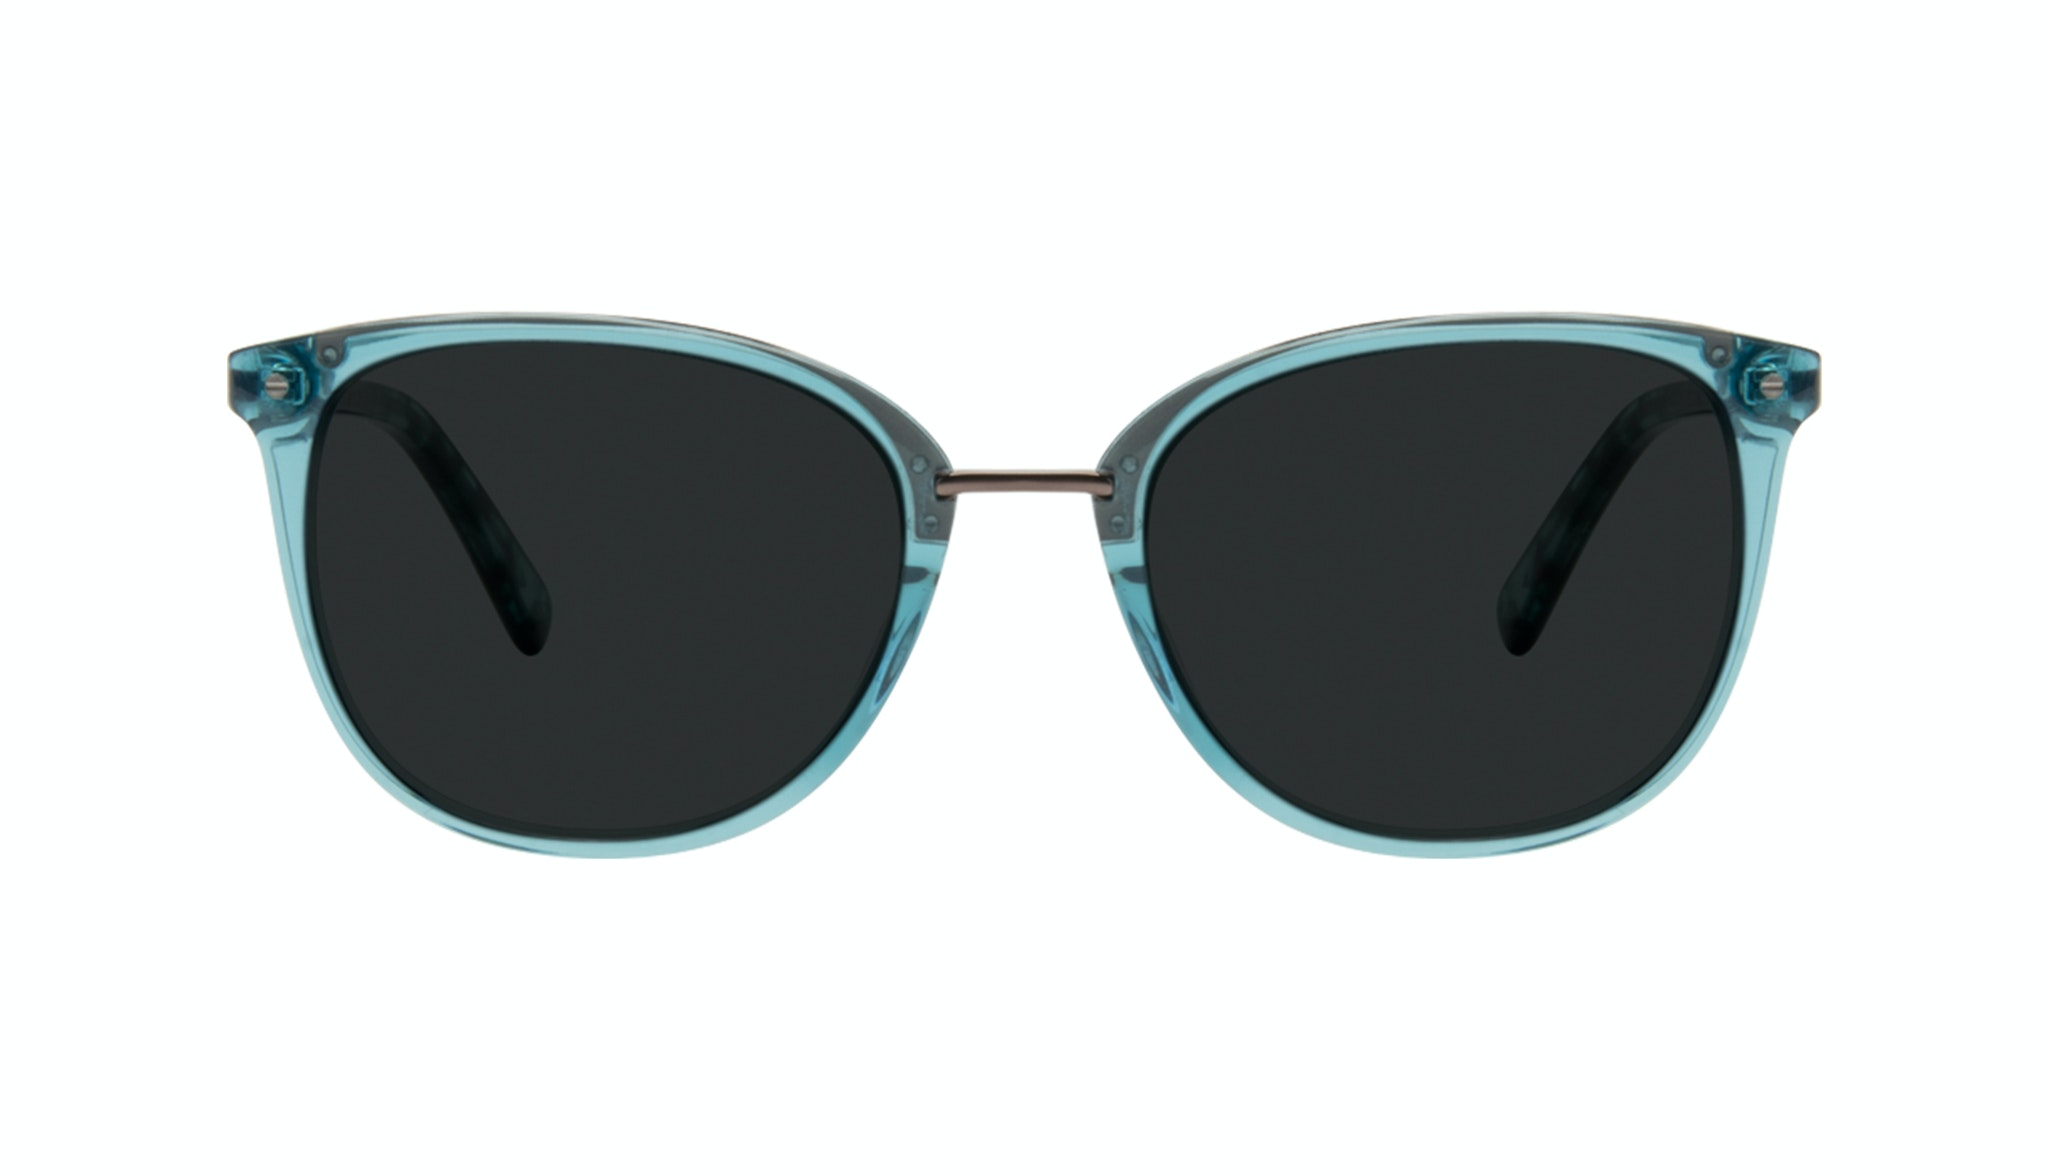 Affordable Fashion Glasses Square Round Sunglasses Women Bella Teal Front